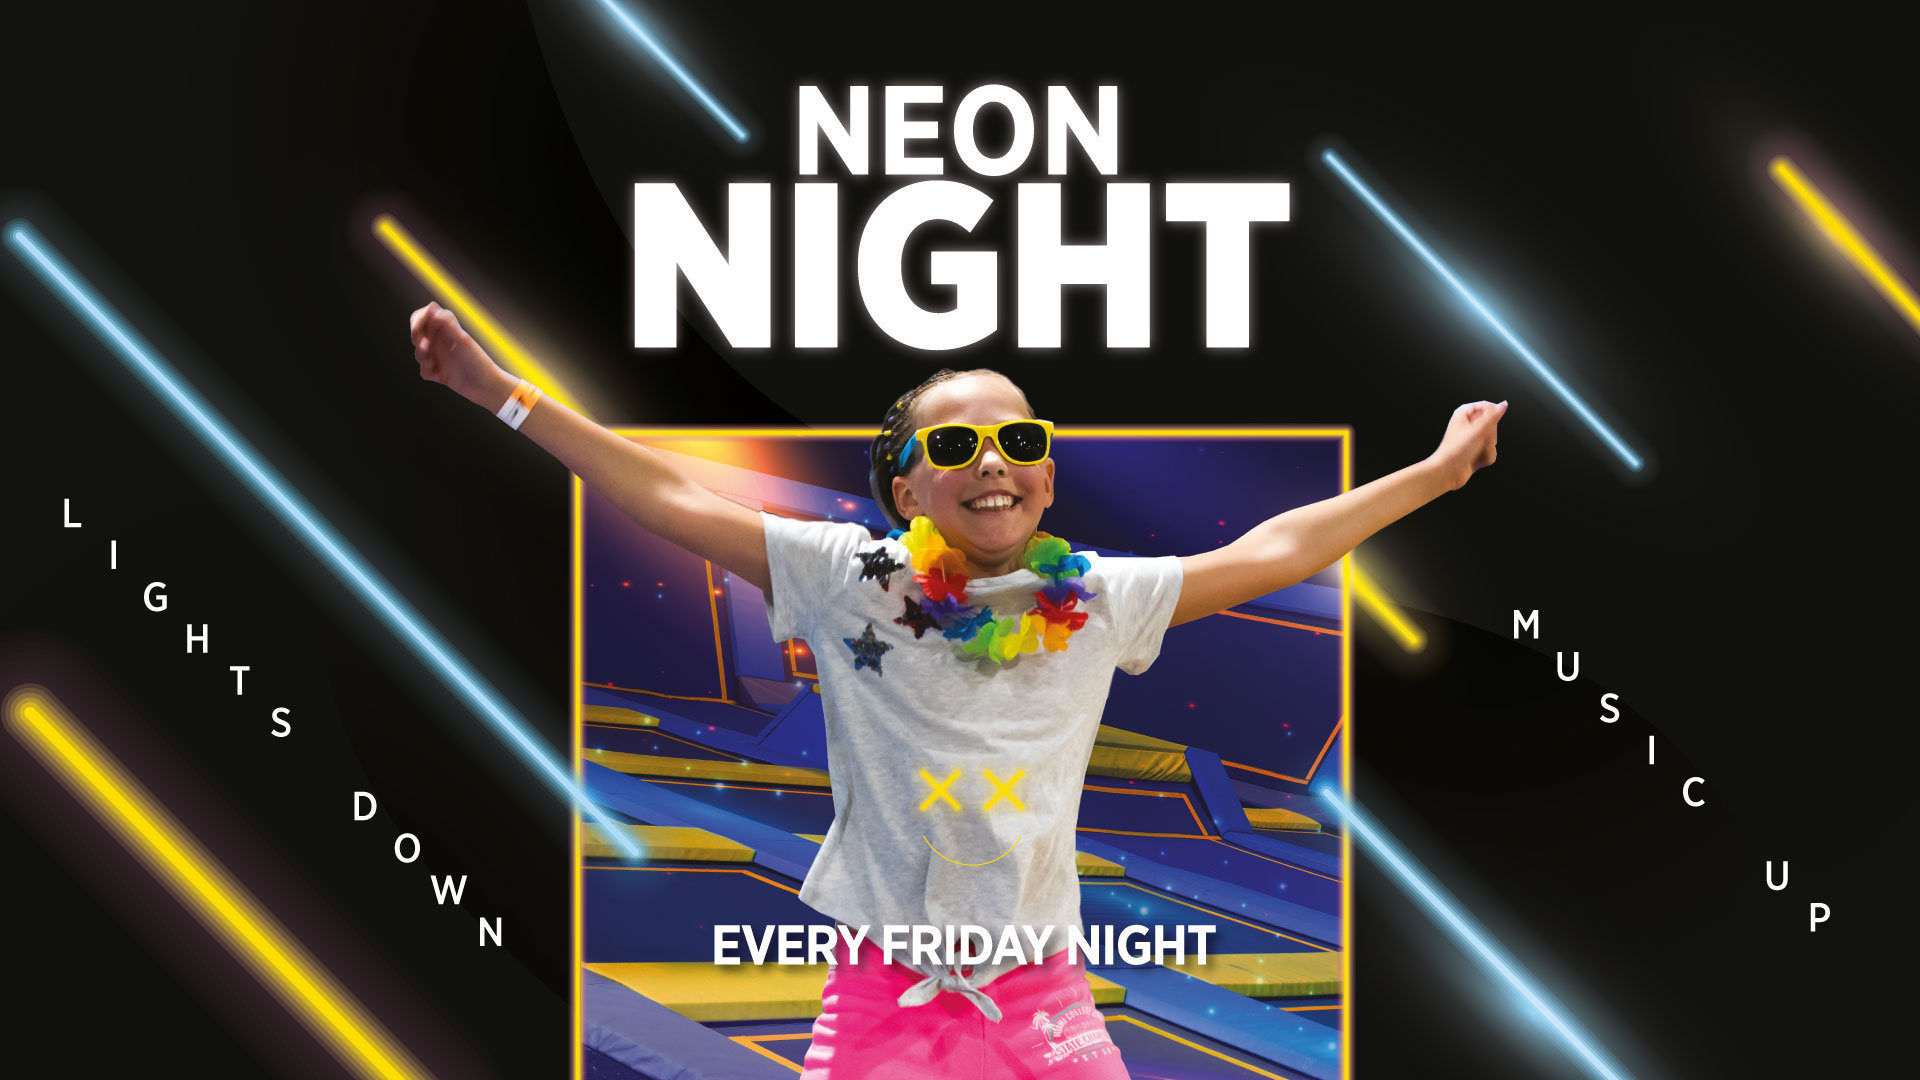 Neon Nights At Oxygen Freejumping